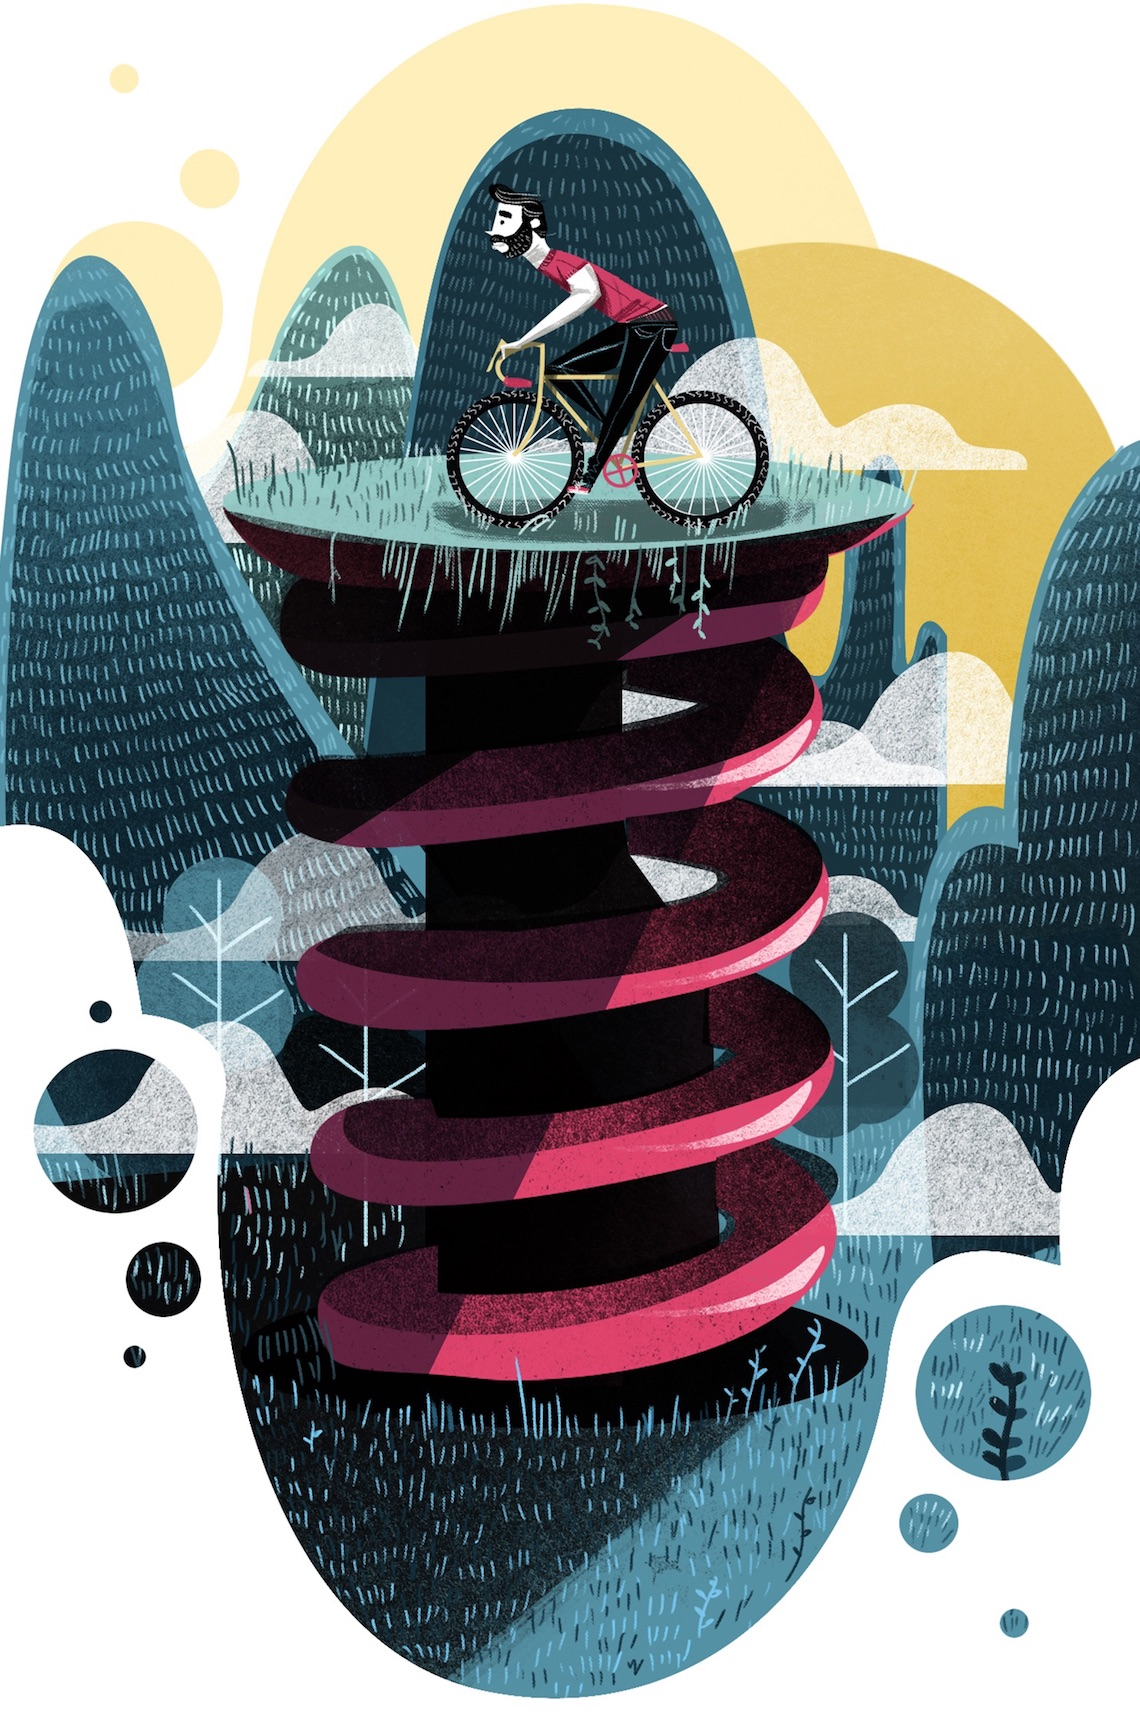 Guillo Castellanos Illustrazioni_Bike_Mèxico_urbancycling_4